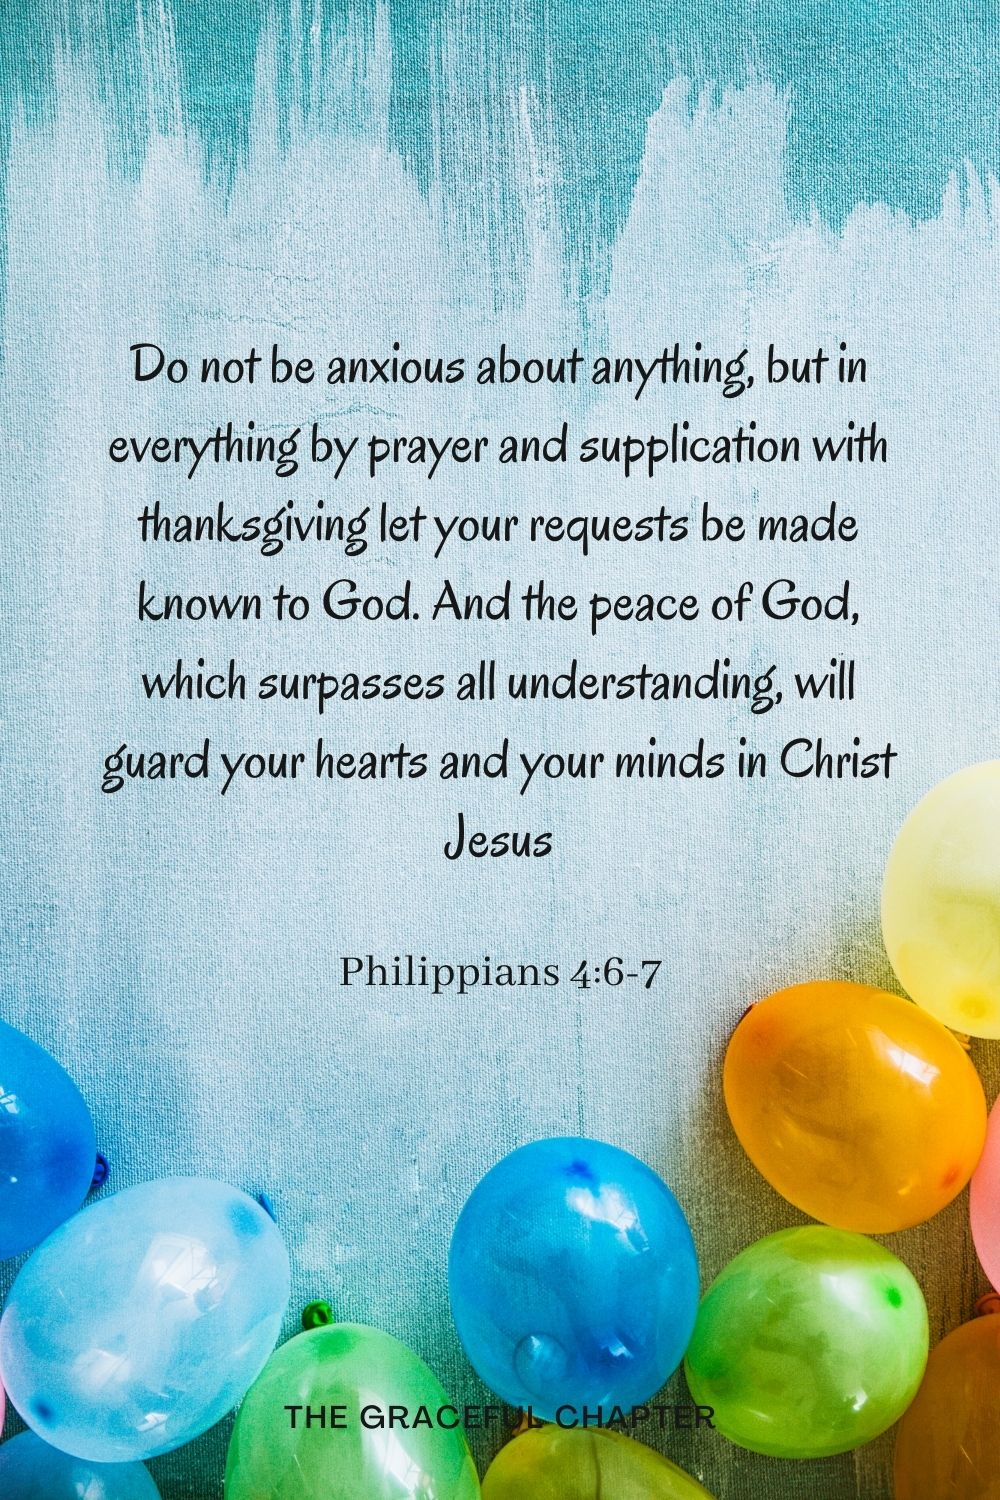 Do not be anxious about anything, but in everything by prayer and supplication with thanksgiving let your requests be made known to God. And the peace of God, which surpasses all understanding, will guard your hearts and your minds in Christ Jesus Philippians 4:6-7